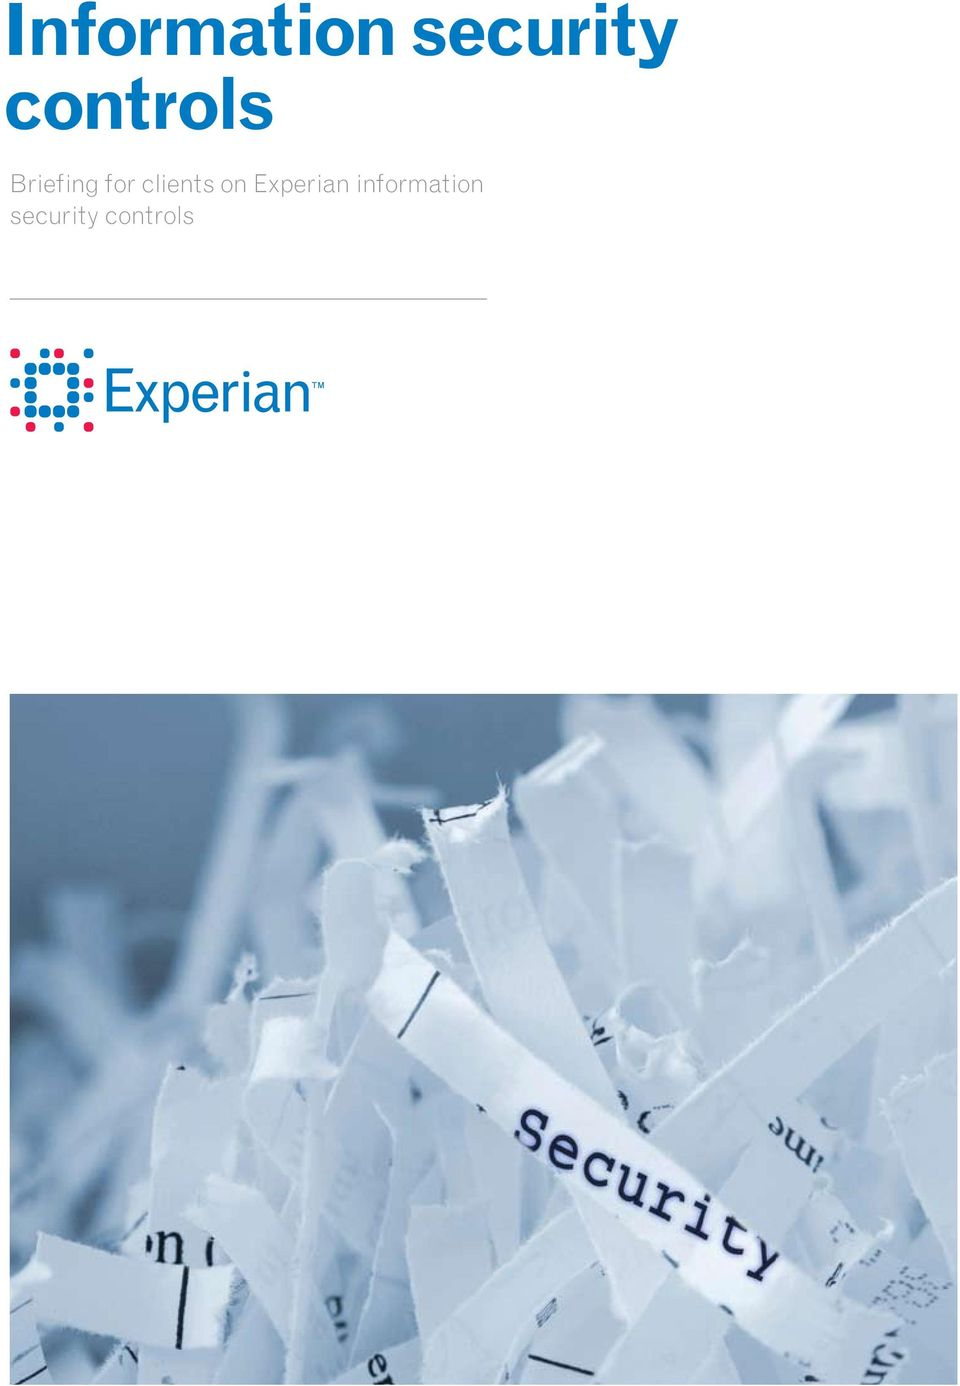 clients on Experian